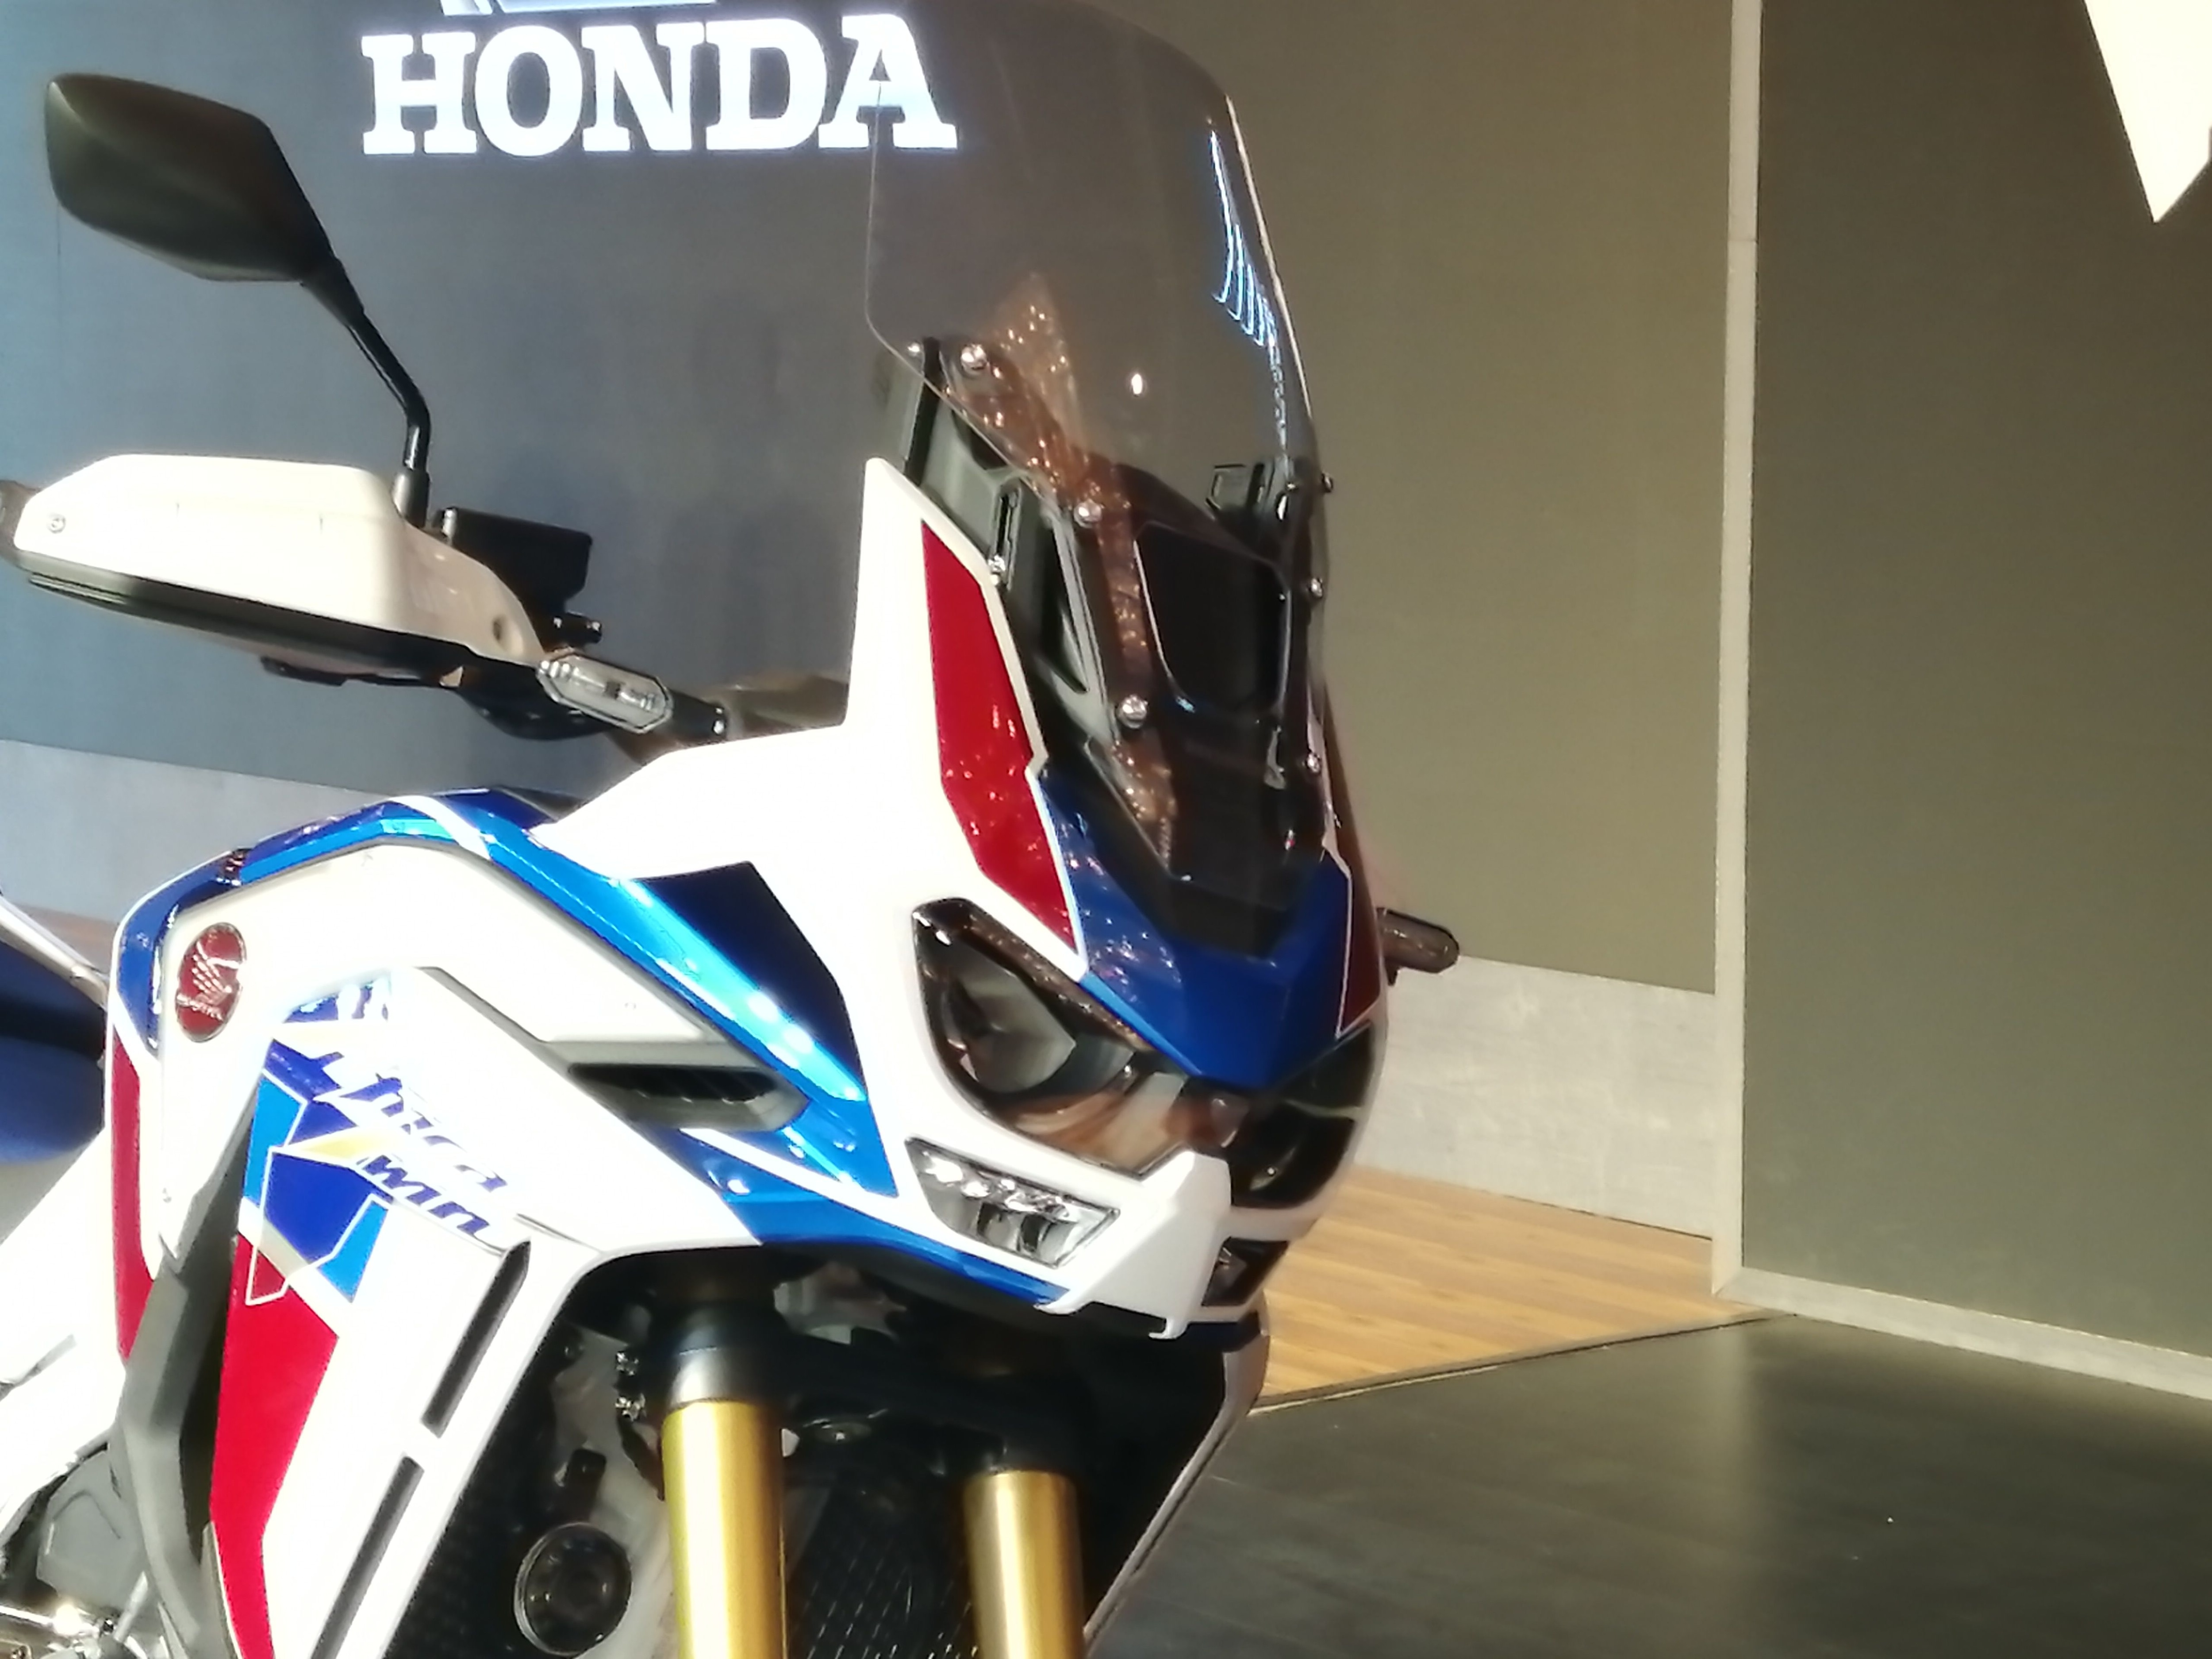 The Africa Twin 2020 gets a 5-stage adjustable windscreen and heated grips.